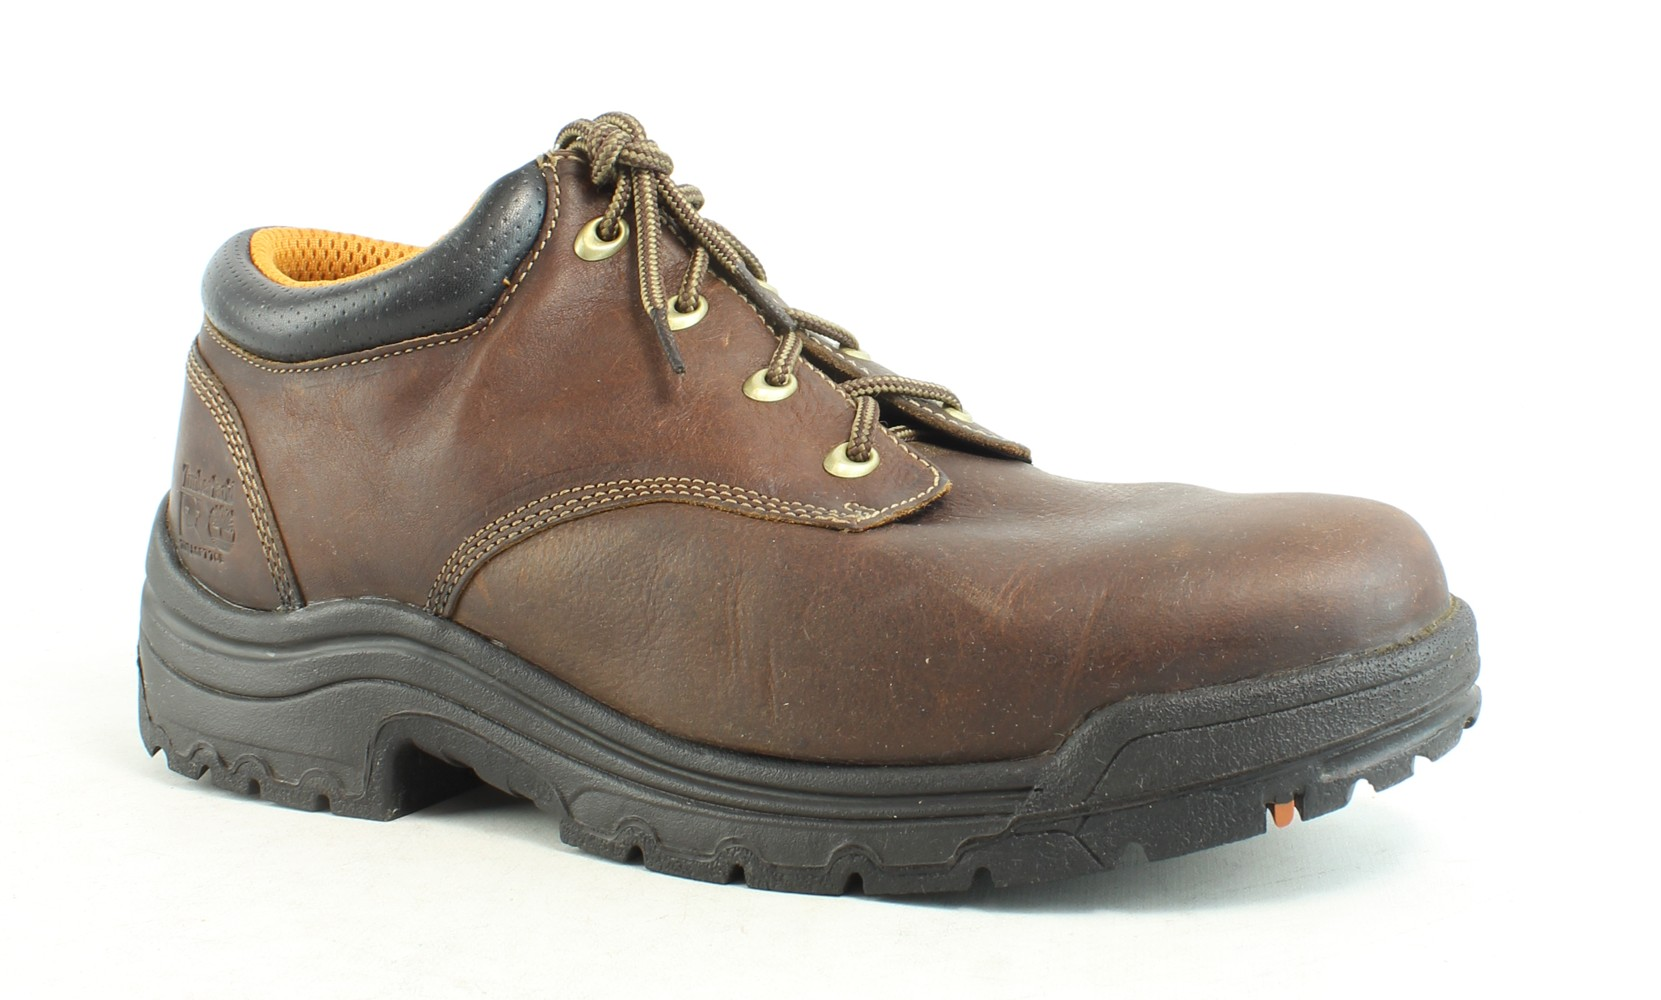 bb9c3e2125d85 Timberland MENS Brown Work   Safety Boots Size 11 (E